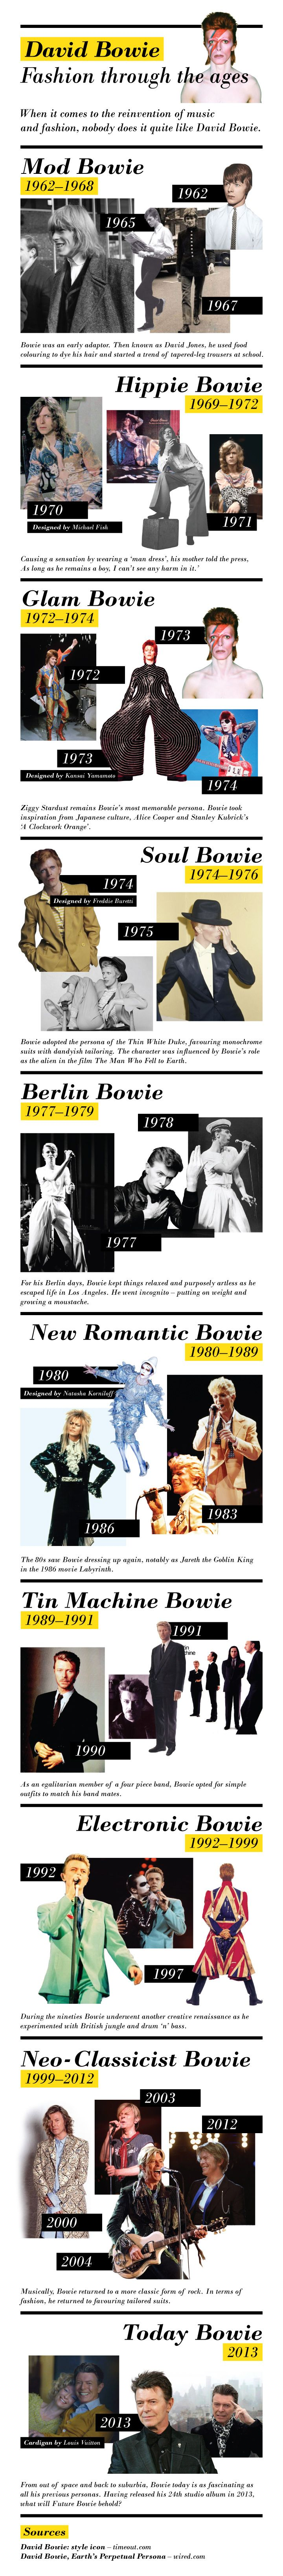 David Bowie Infographic